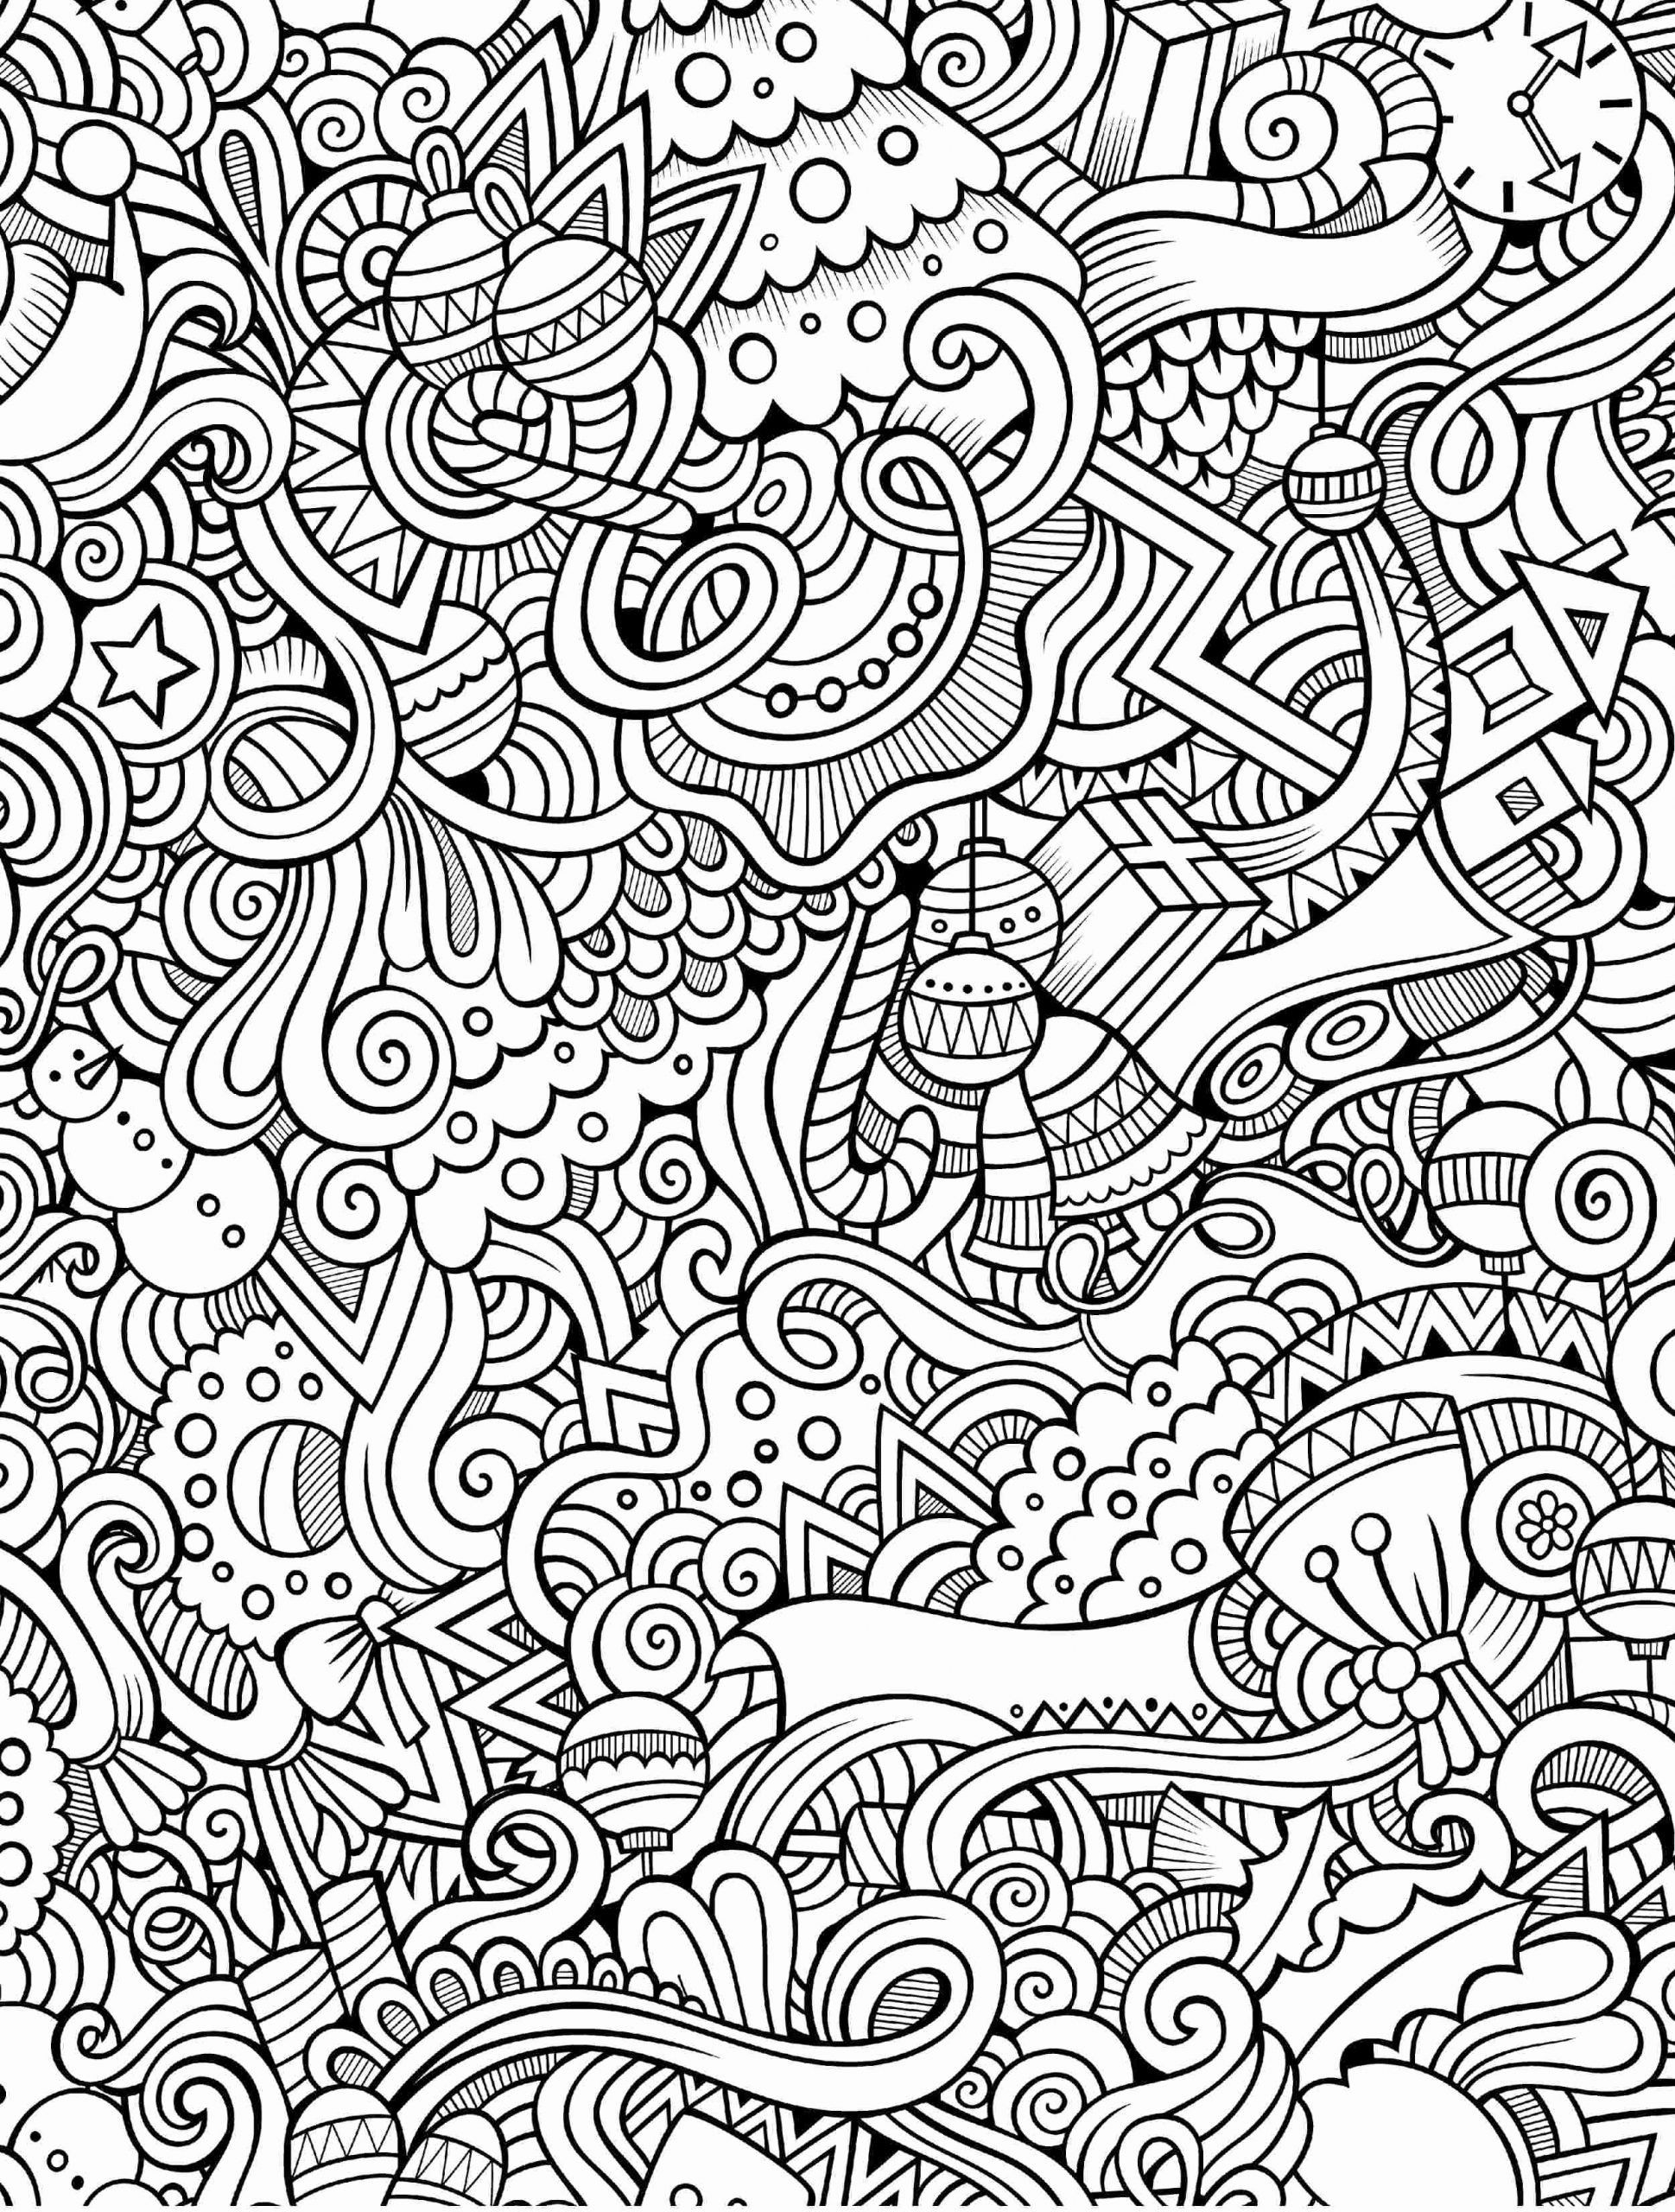 Pin On Adult Coloring Pages Ideas Printable